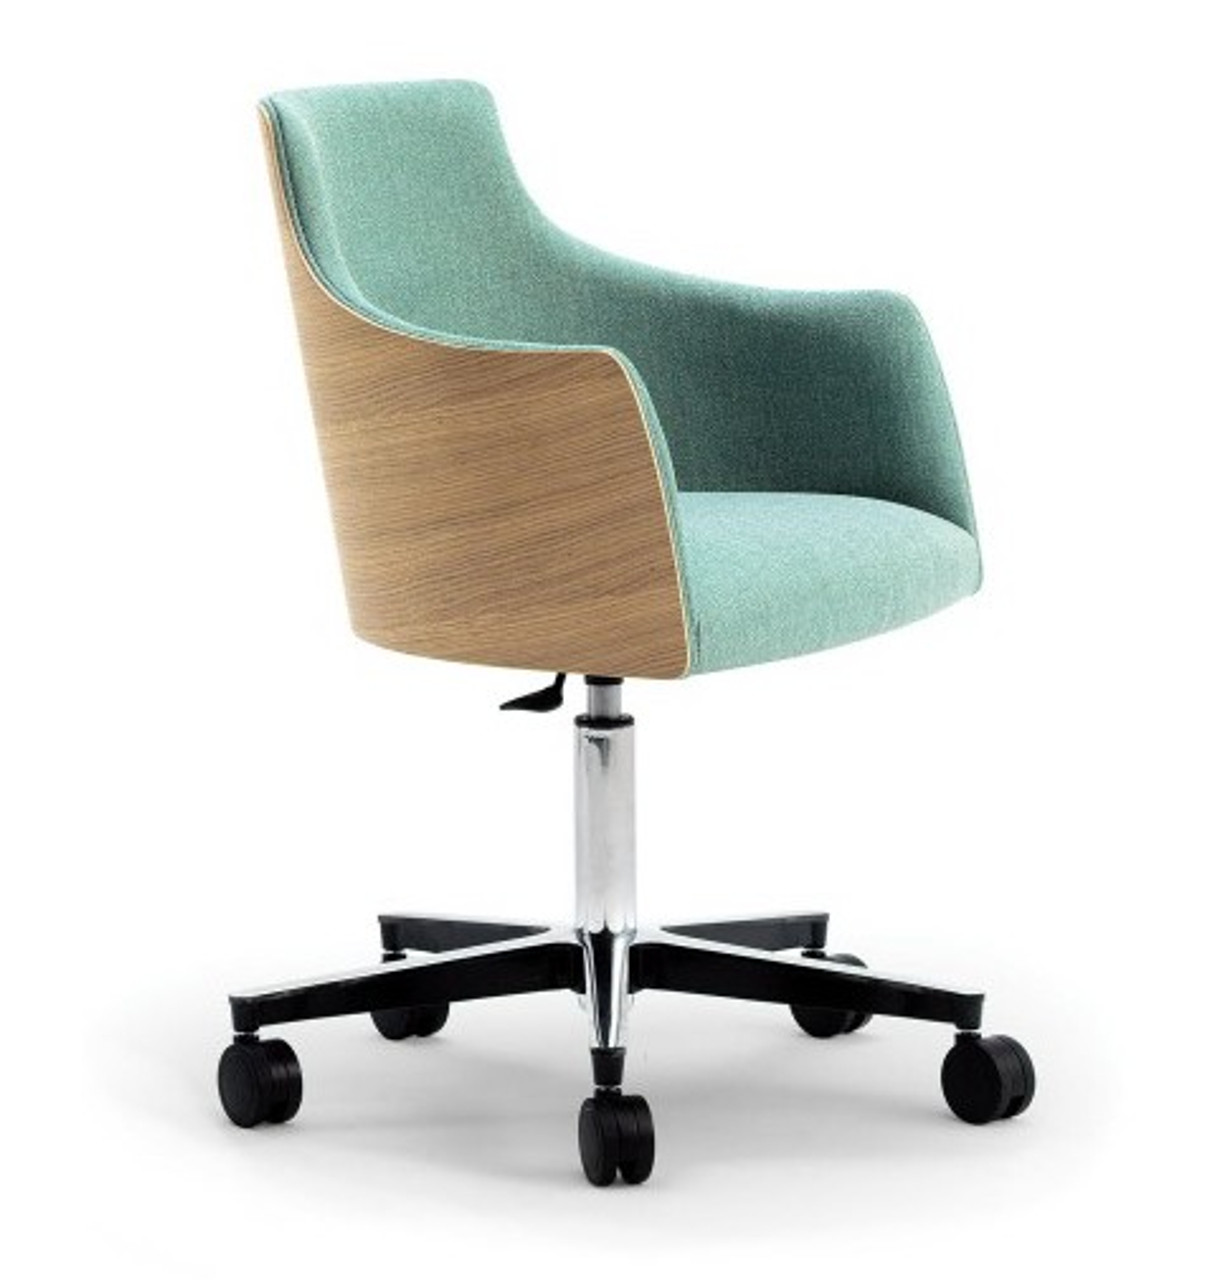 Image of: Cape Furniture Albert One Mid Century Office Chair With Wood Back Shell